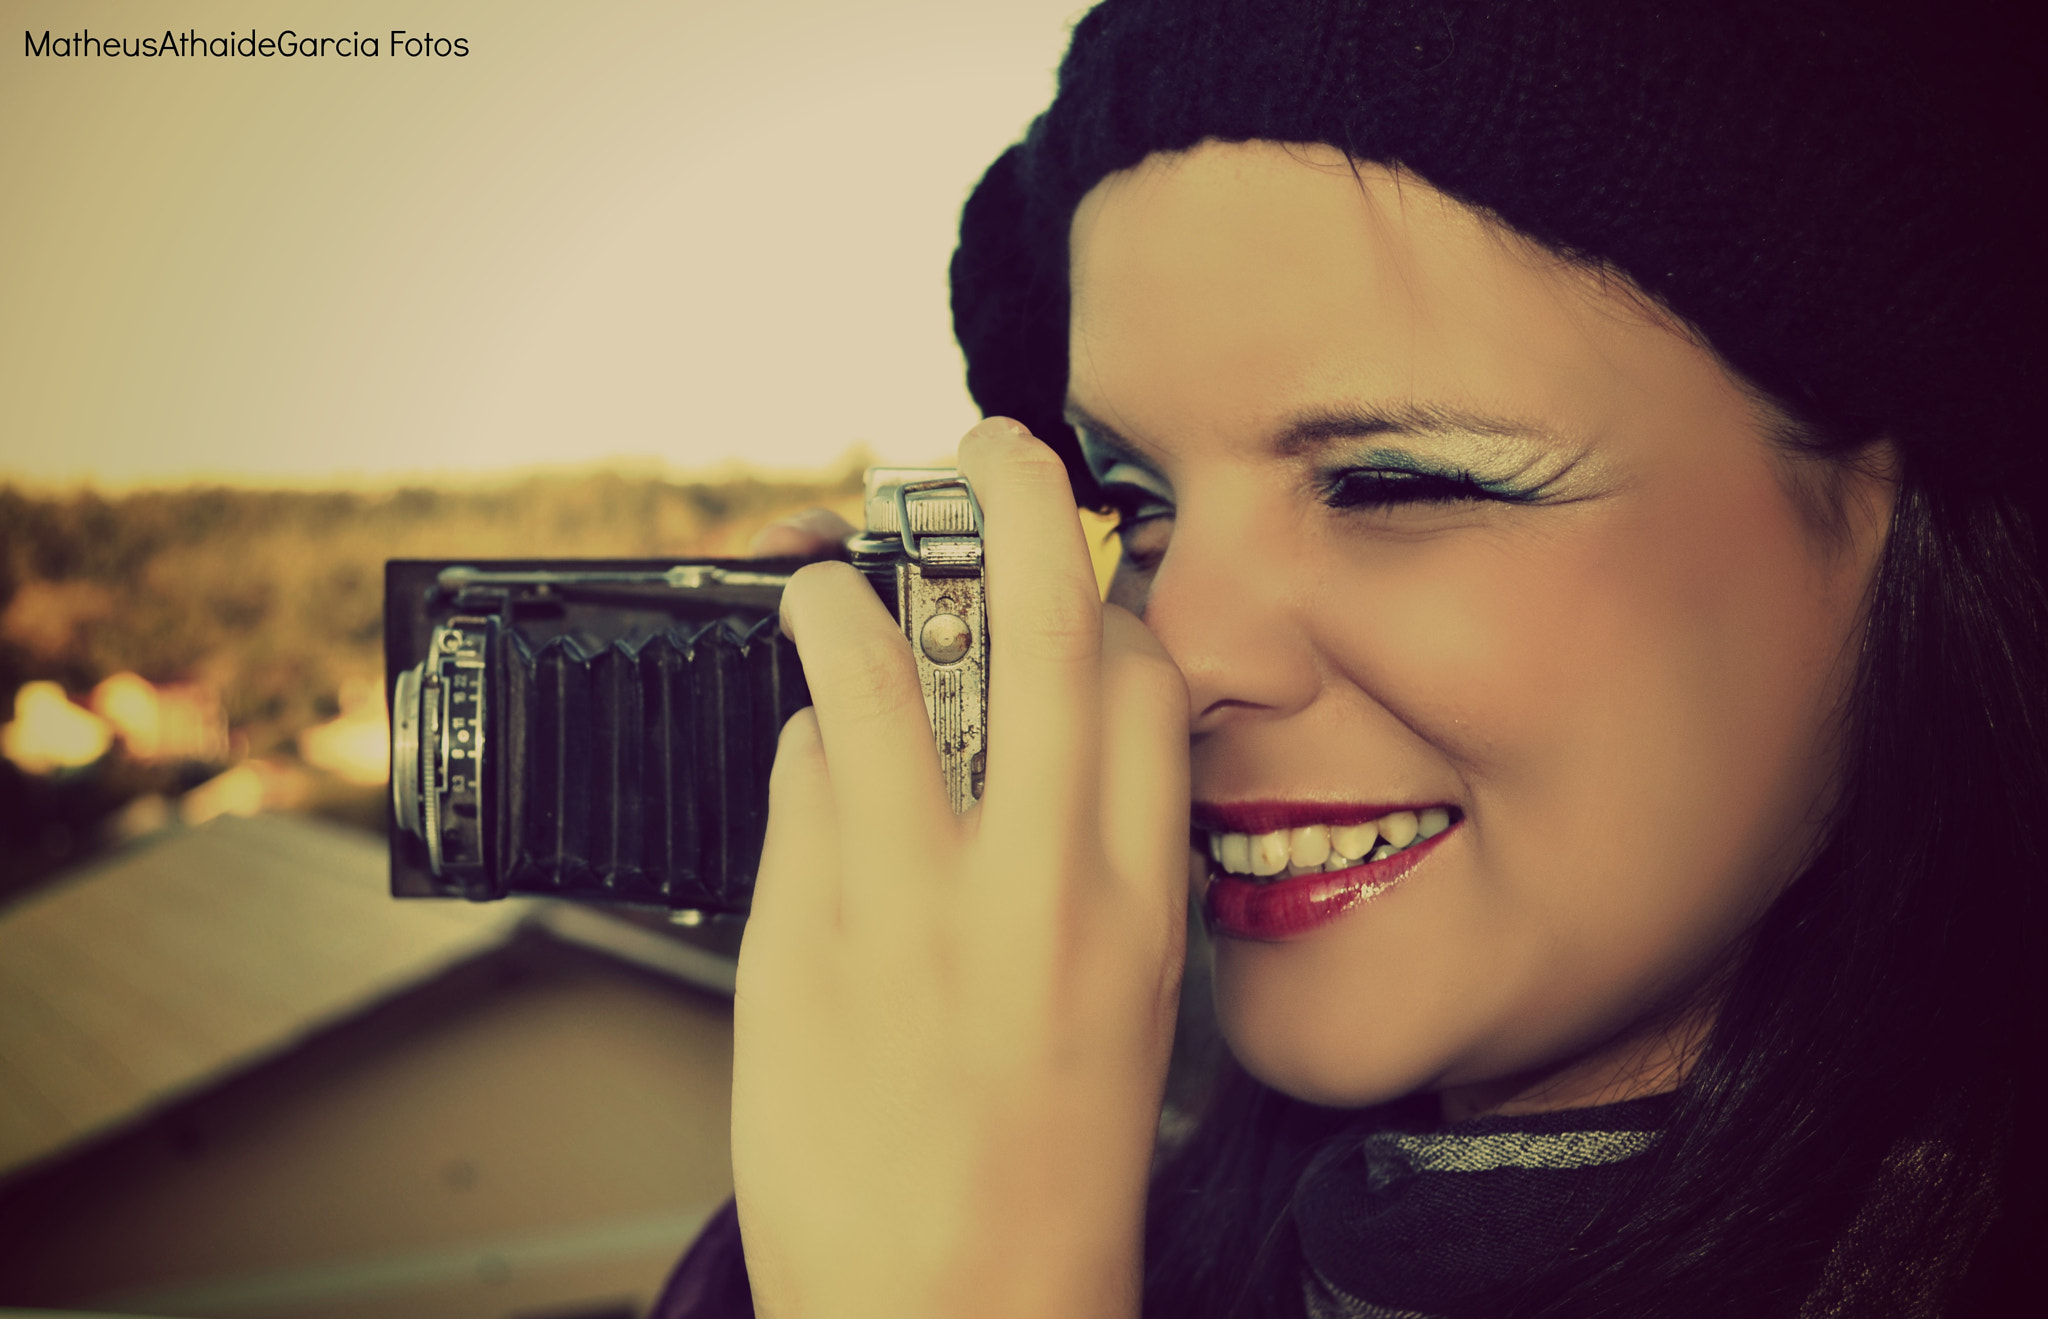 Photograph Retro by Matheus Athaide on 500px